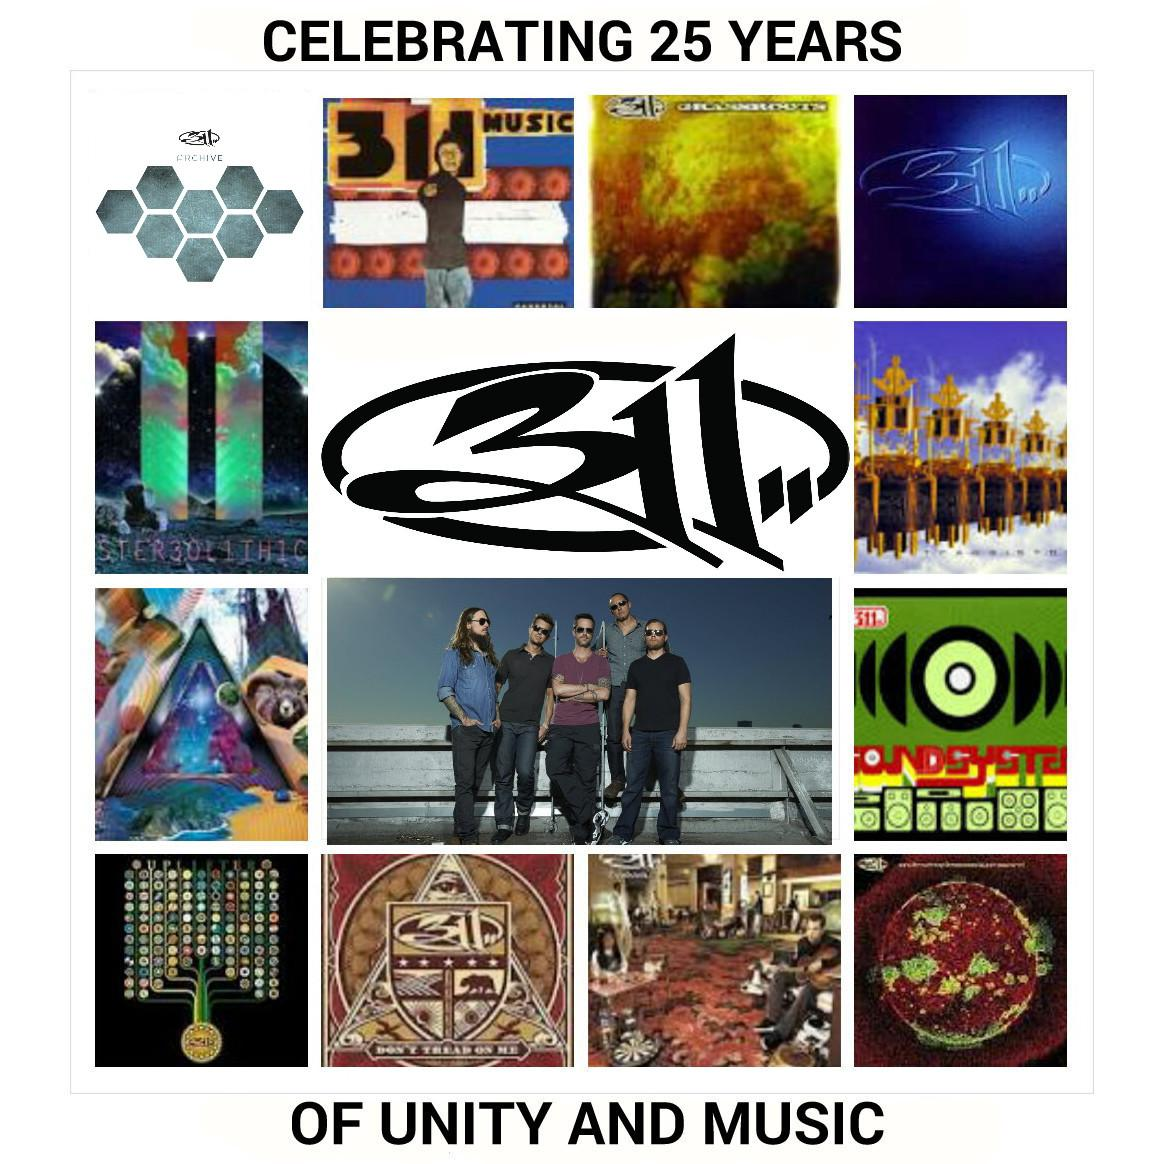 Today is our 25TH ANNIVERSARY as a band! THANK YOU. Truly grateful for this amazing milestone. Together we celebrate! http://t.co/pBRgBMoUNk